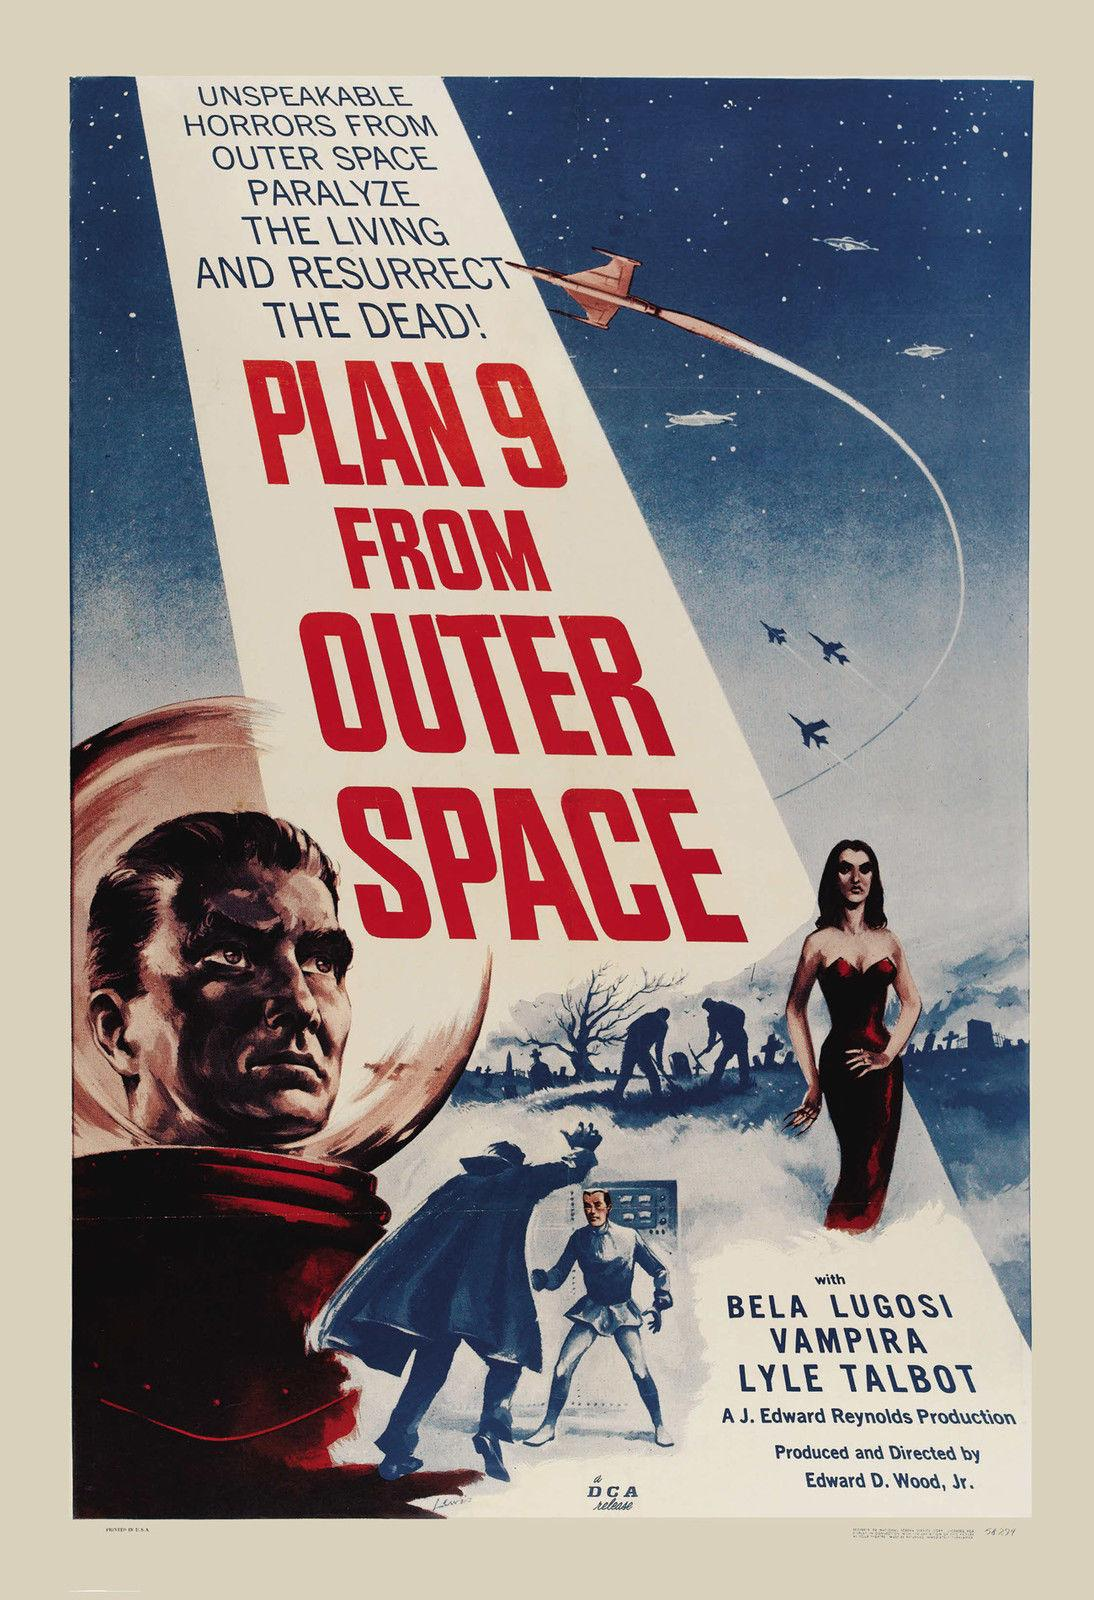 1950 s Sci-Fi * Plan 9 From Outer Space * Bela Lugosi Last Movie Art Silk  Print Poster 24x36inch(60x90cm) 019